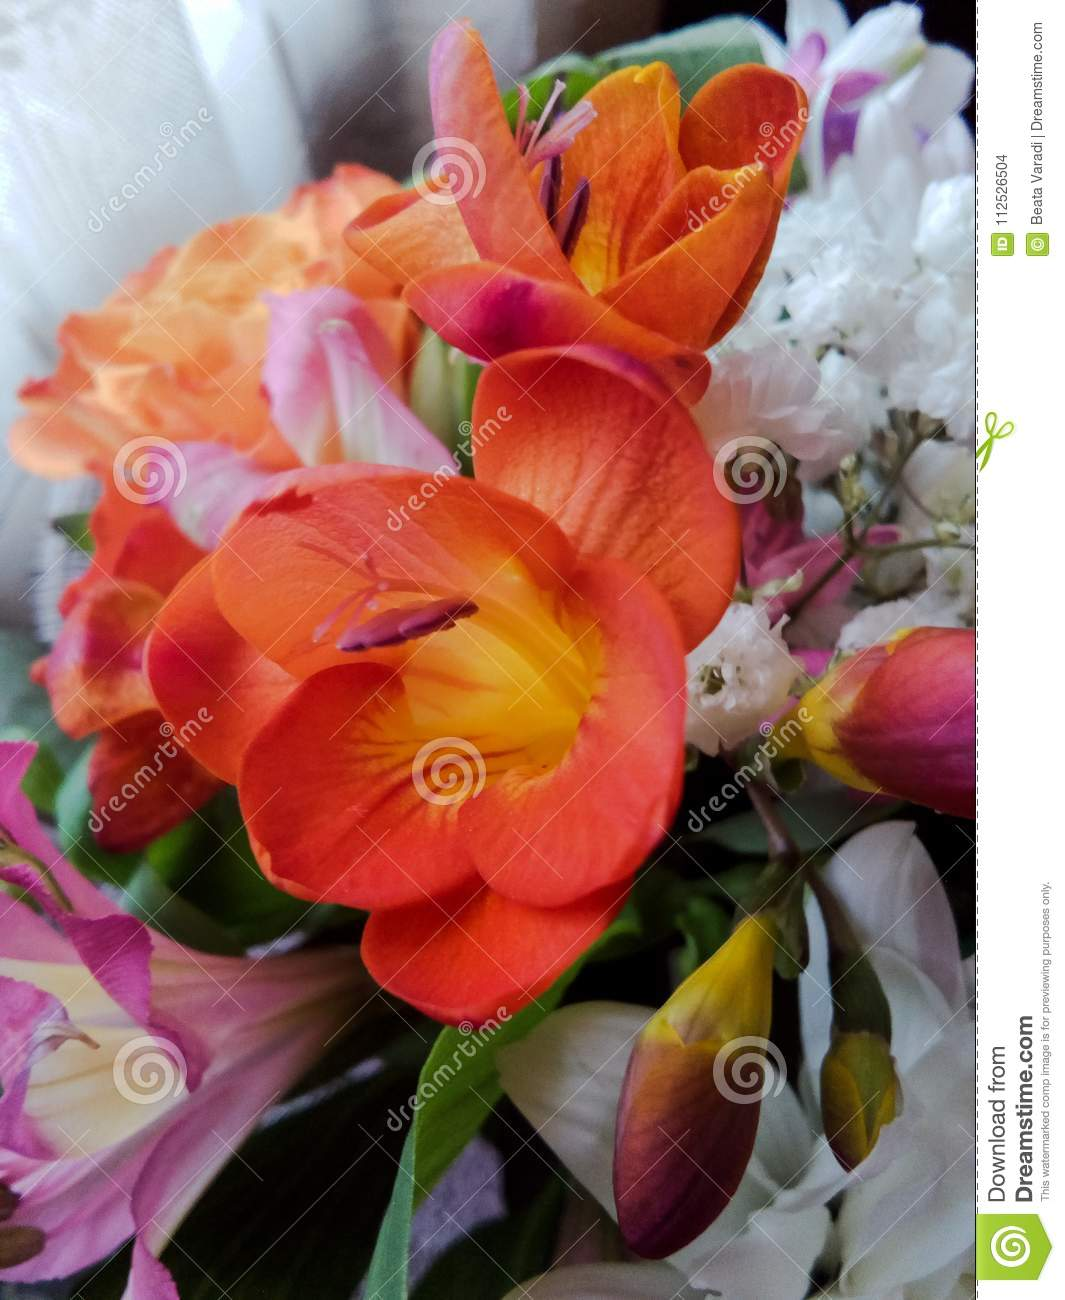 Beautiful Flower Bouquet Close-up With Colorful Flowers Stock Photo ...